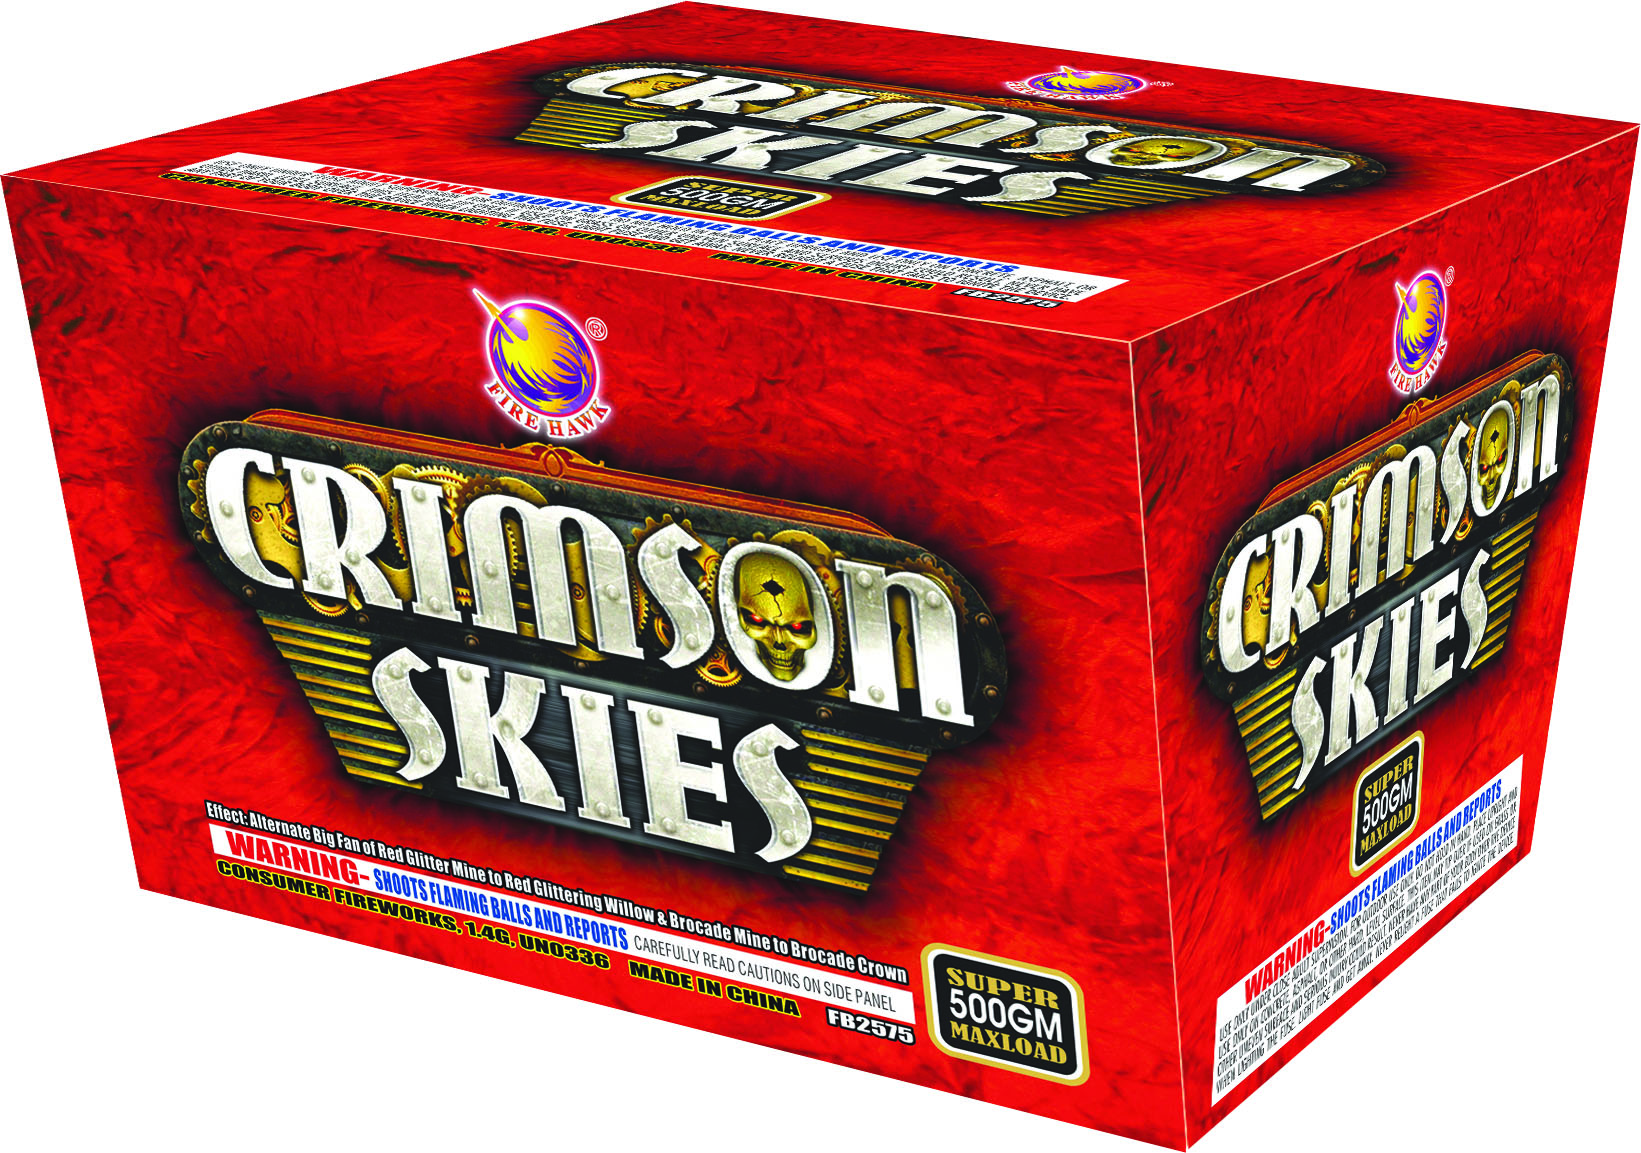 FB2575 Crimson Skies